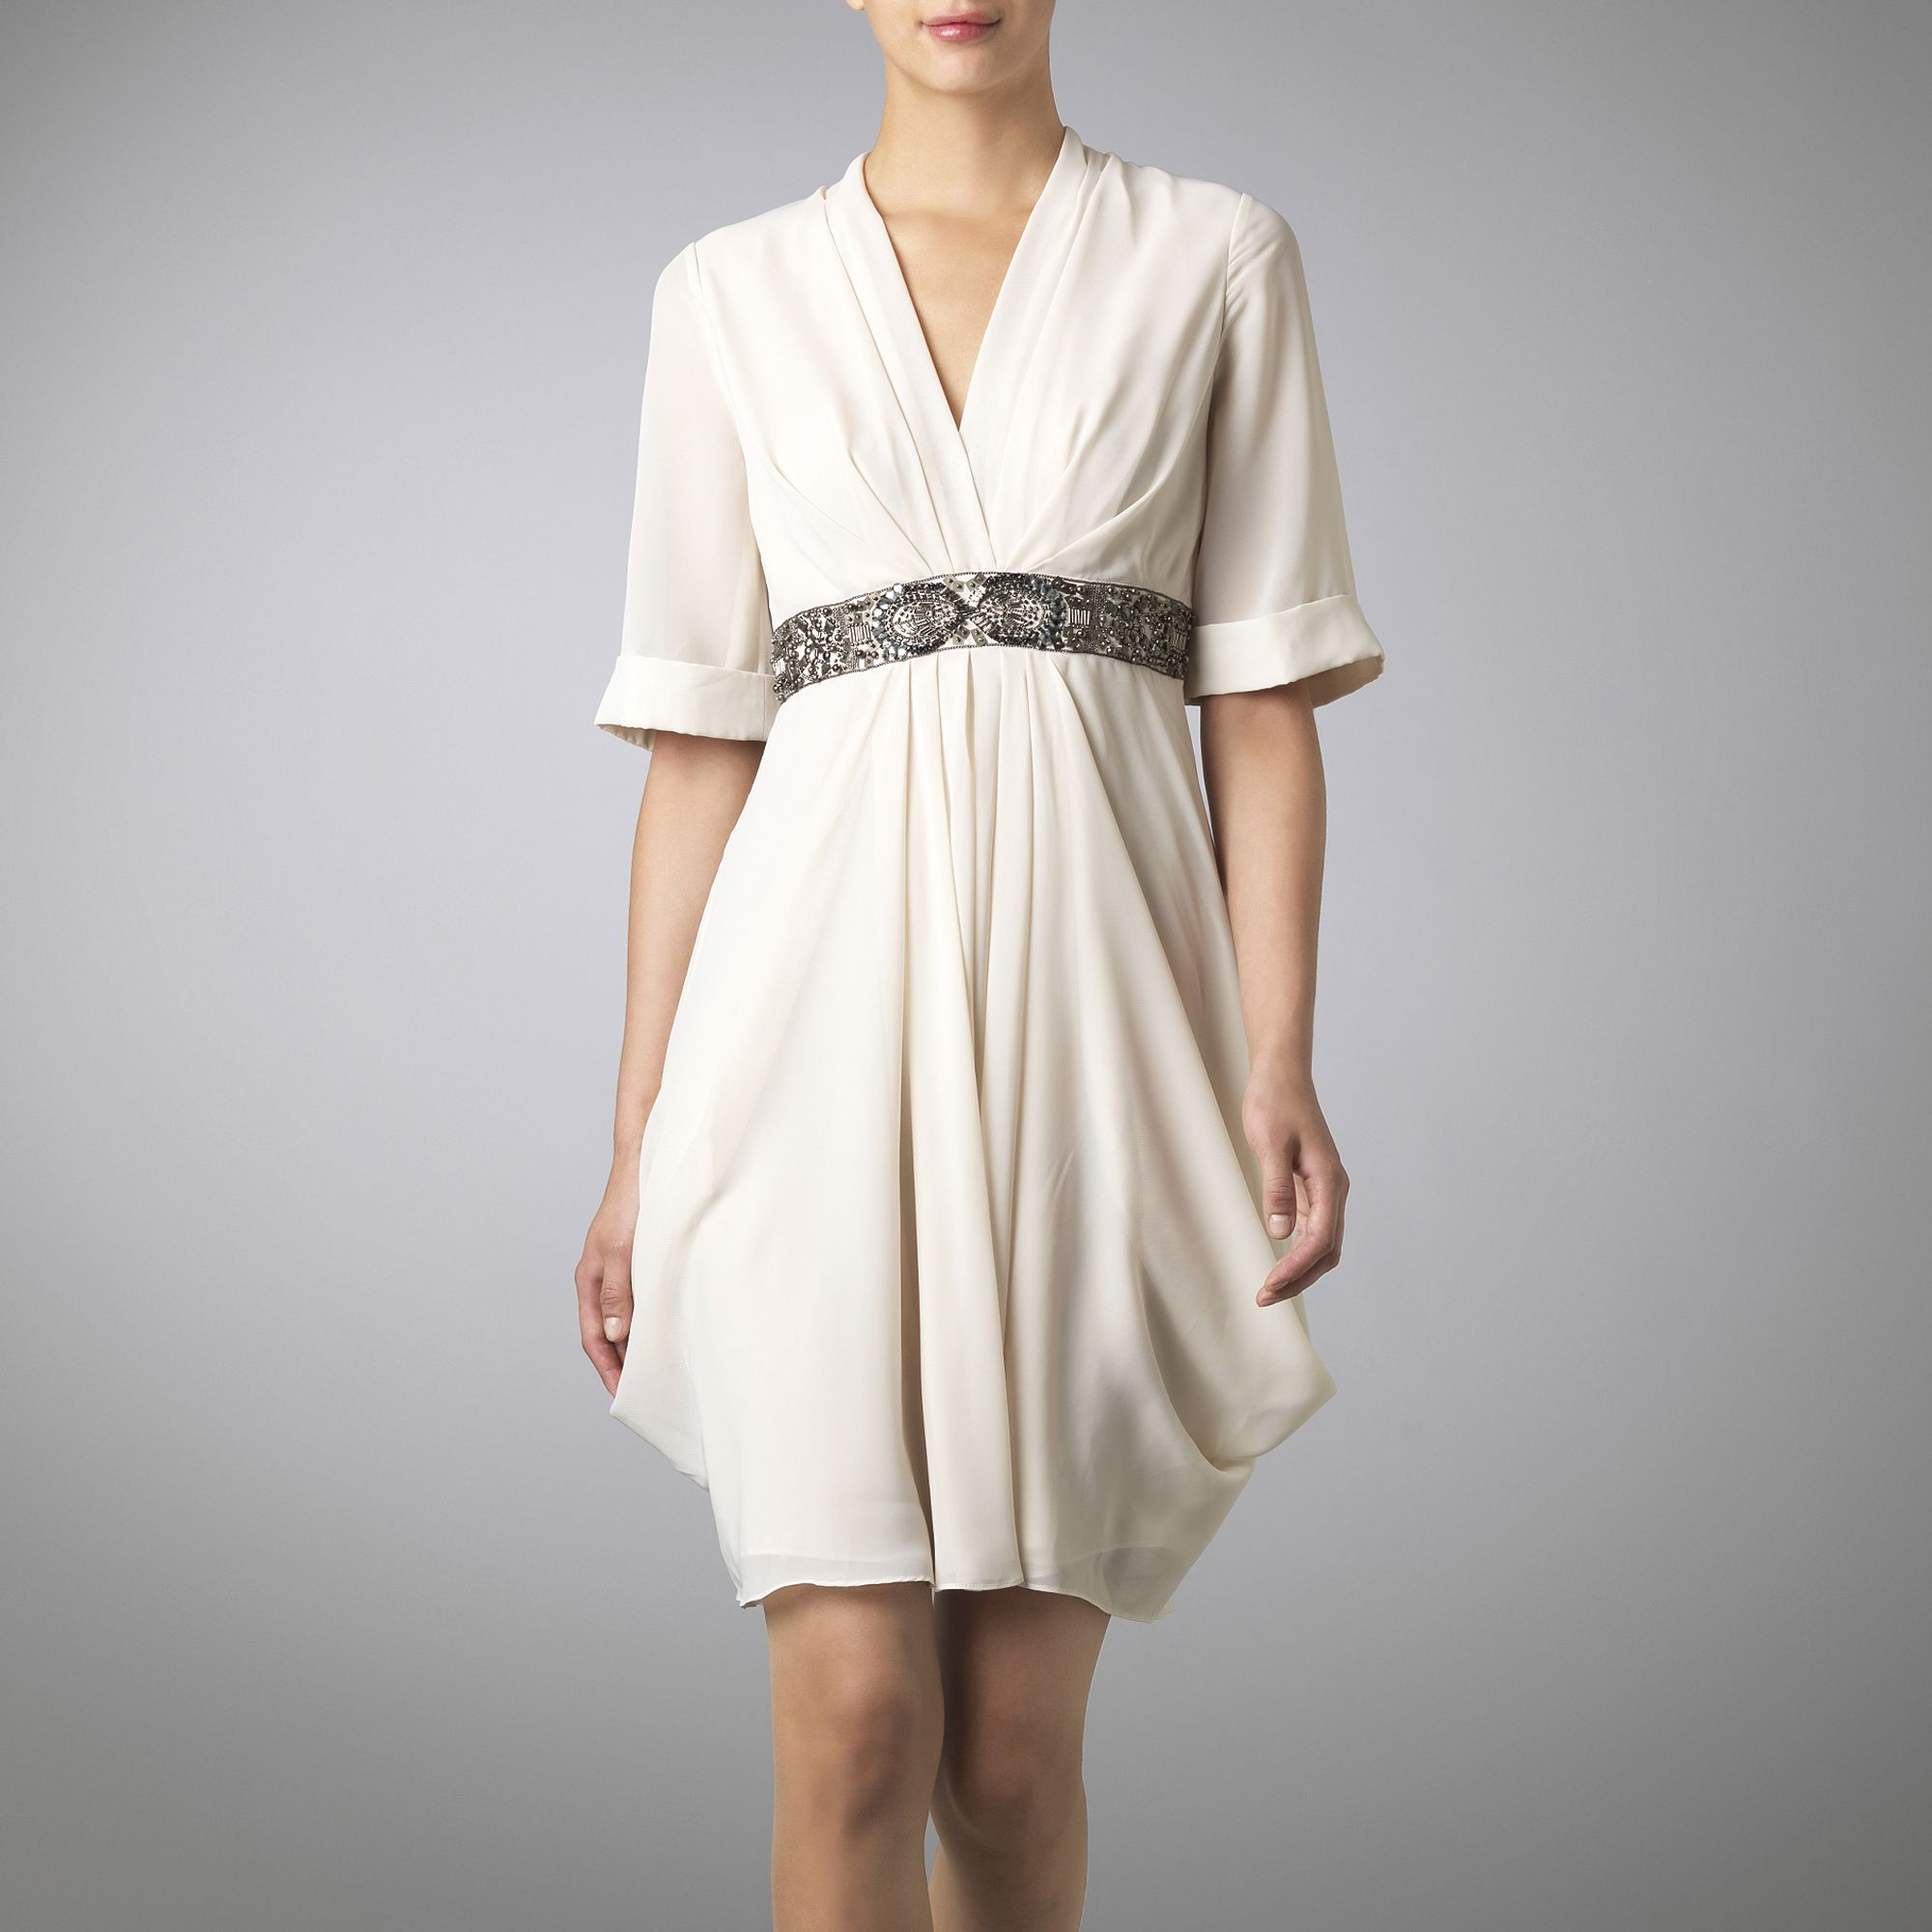 White Kimono Dress | Dress images